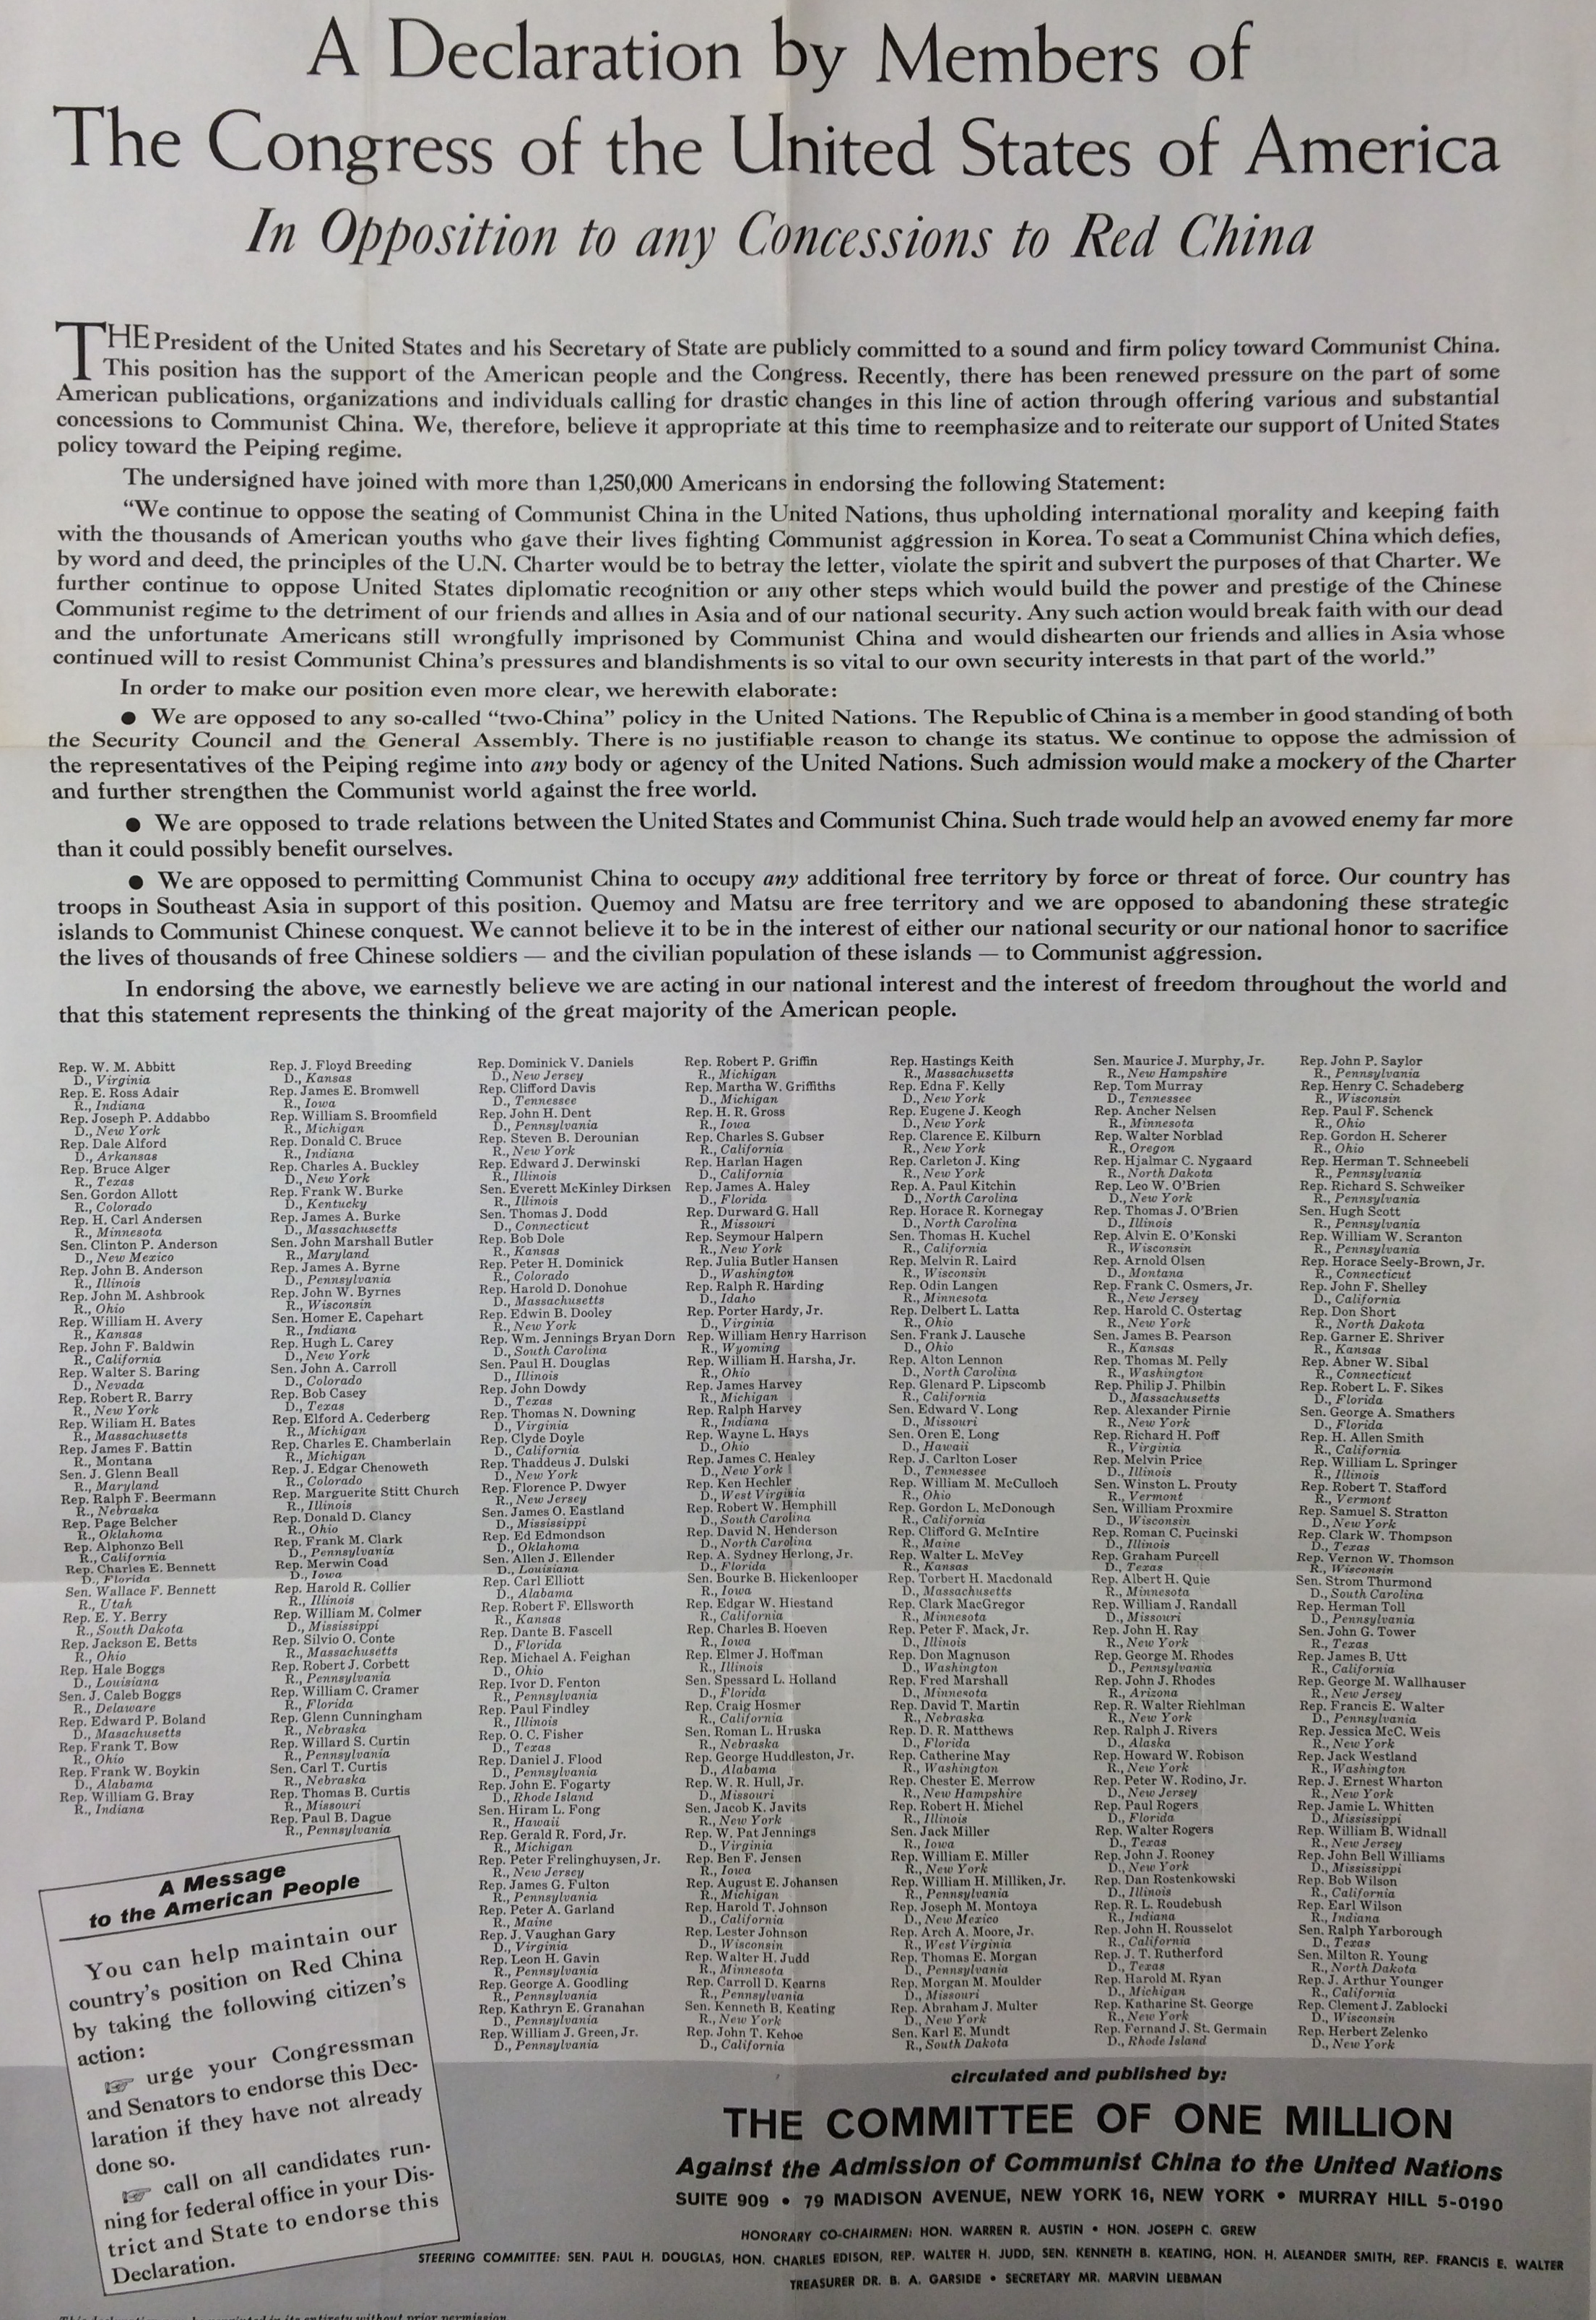 Committee of One Million Declaration (Undated)